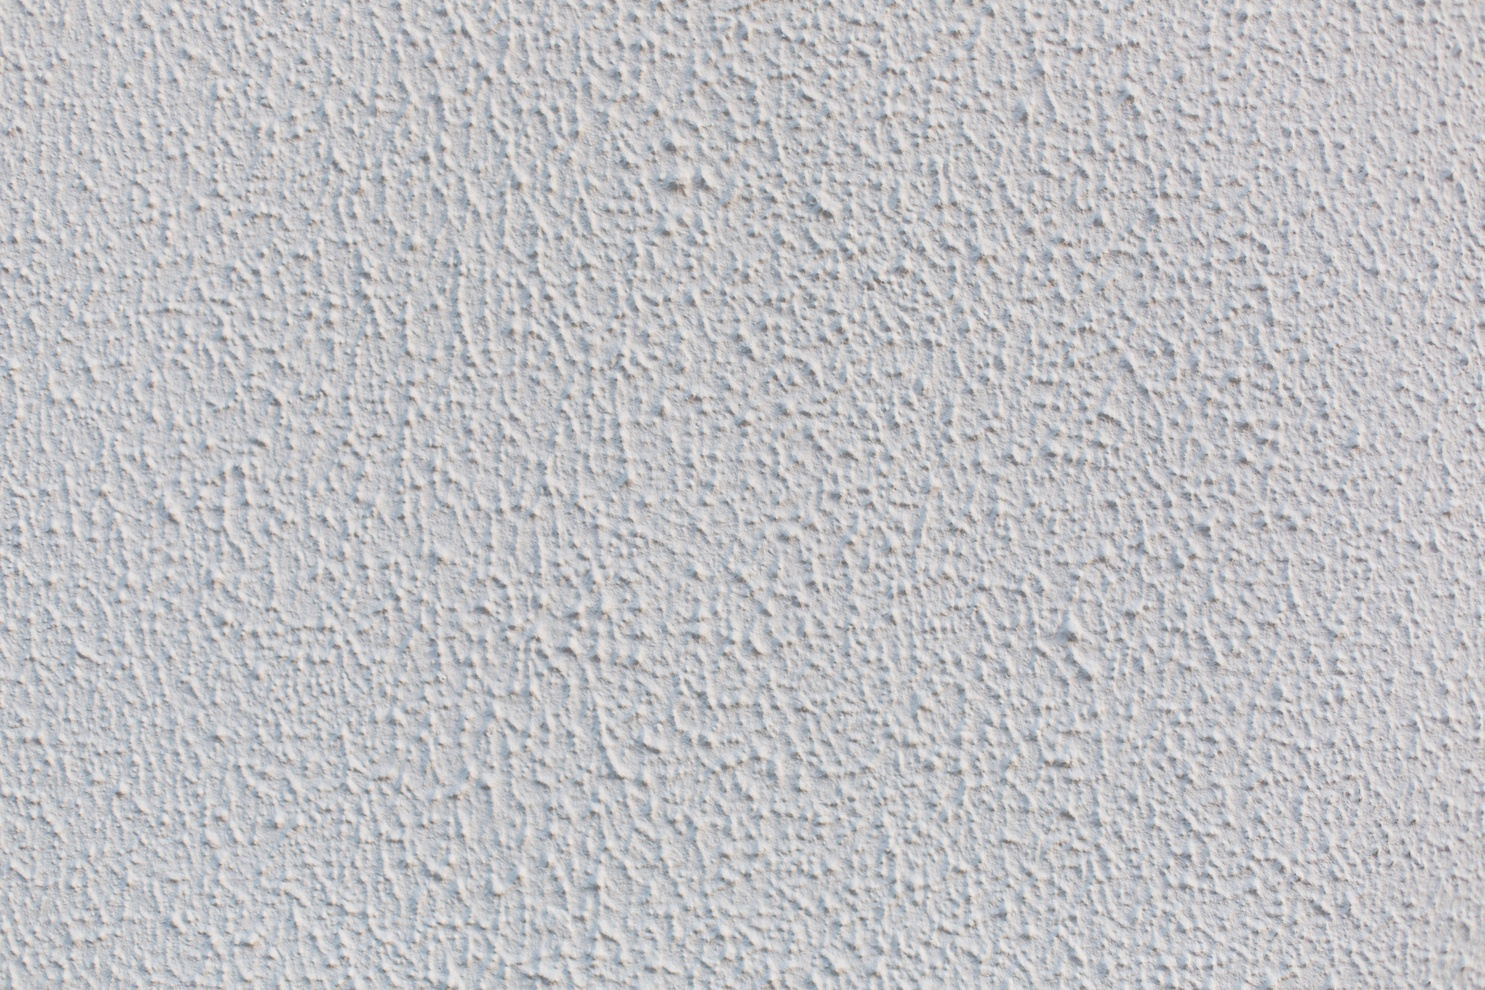 White popcorn ceiling wall